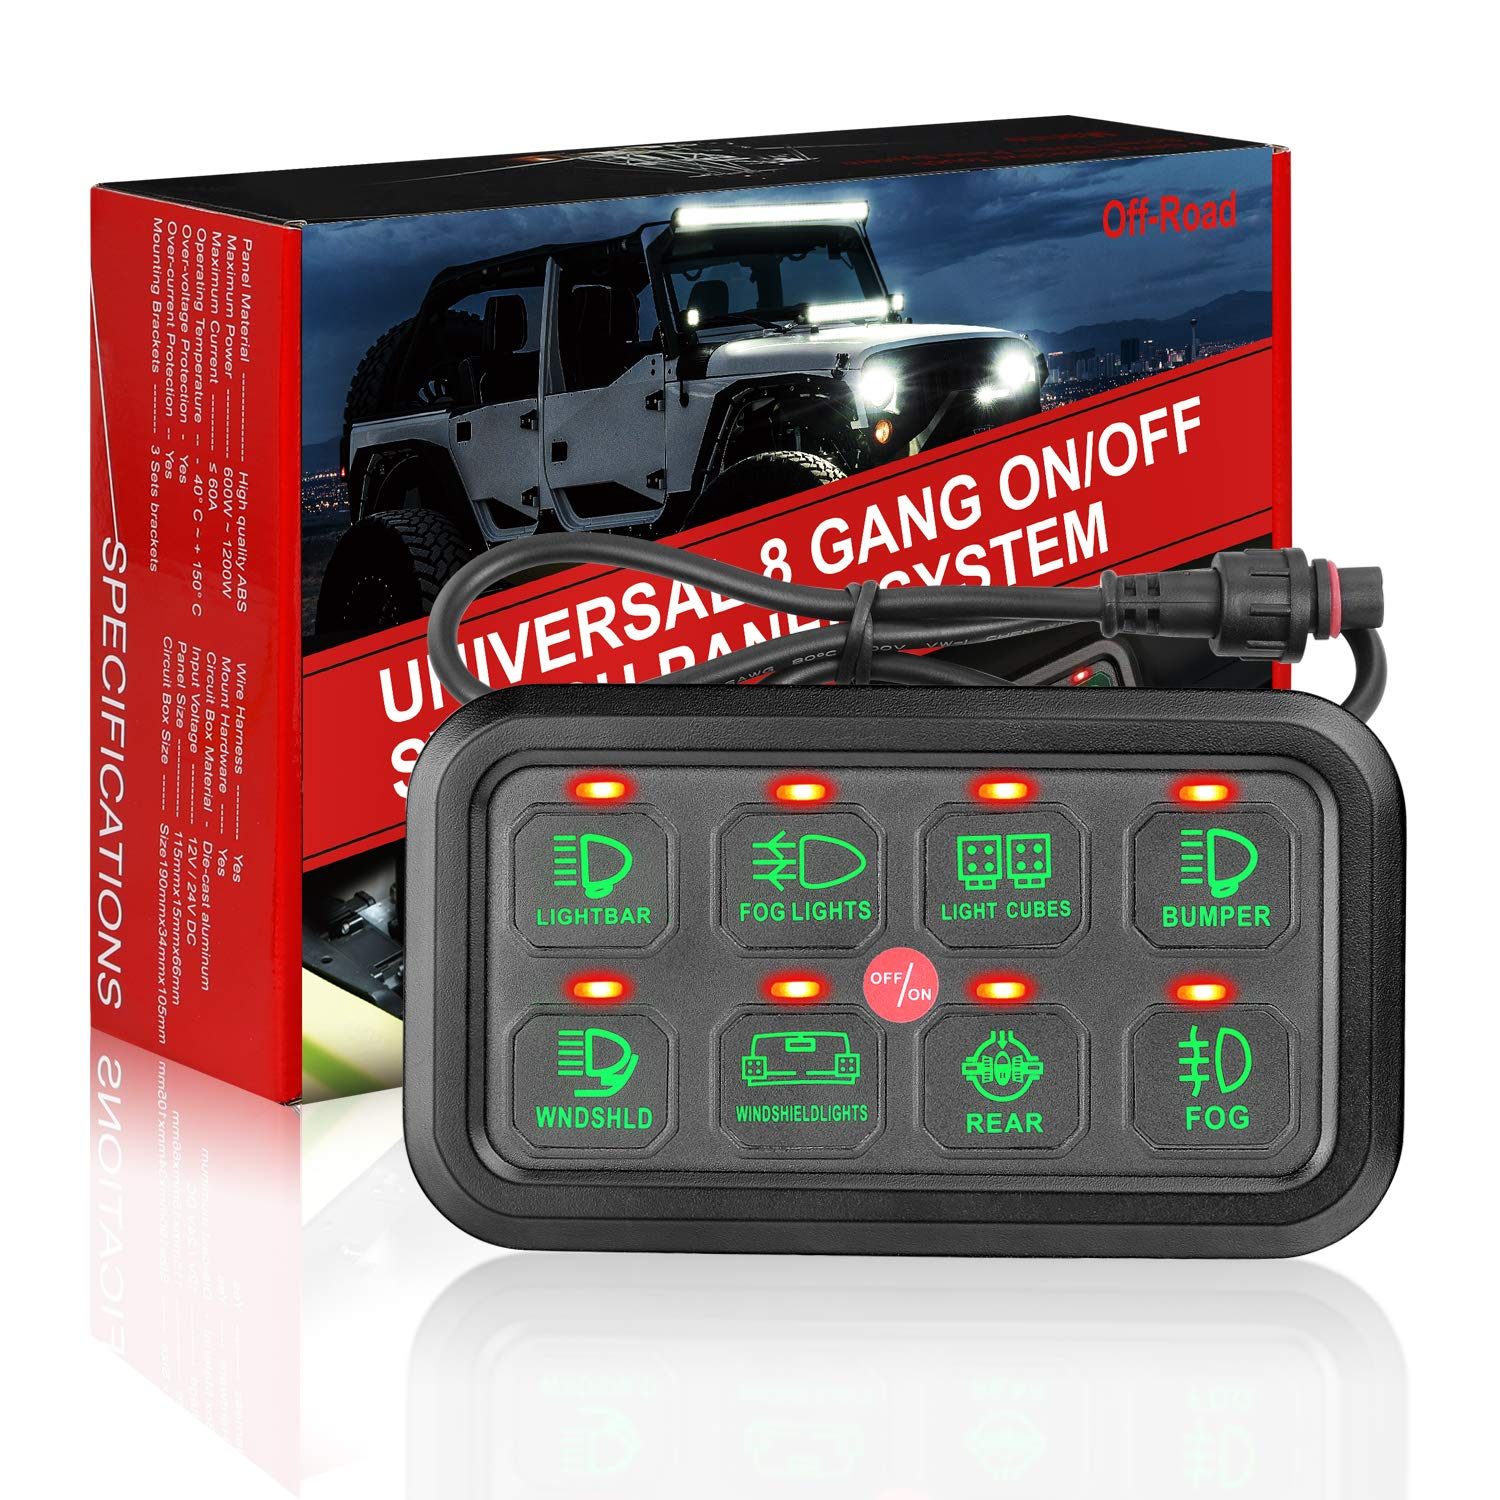 8 Gang Switch Panel Kit, Auto Power Plus Circuit Control Box Electronic Relay System Universal ON/Off Touch Switch Box with Harness and Label Stickers For Truck Jeep ATV UTV Boat Marine by Auto Power Plus